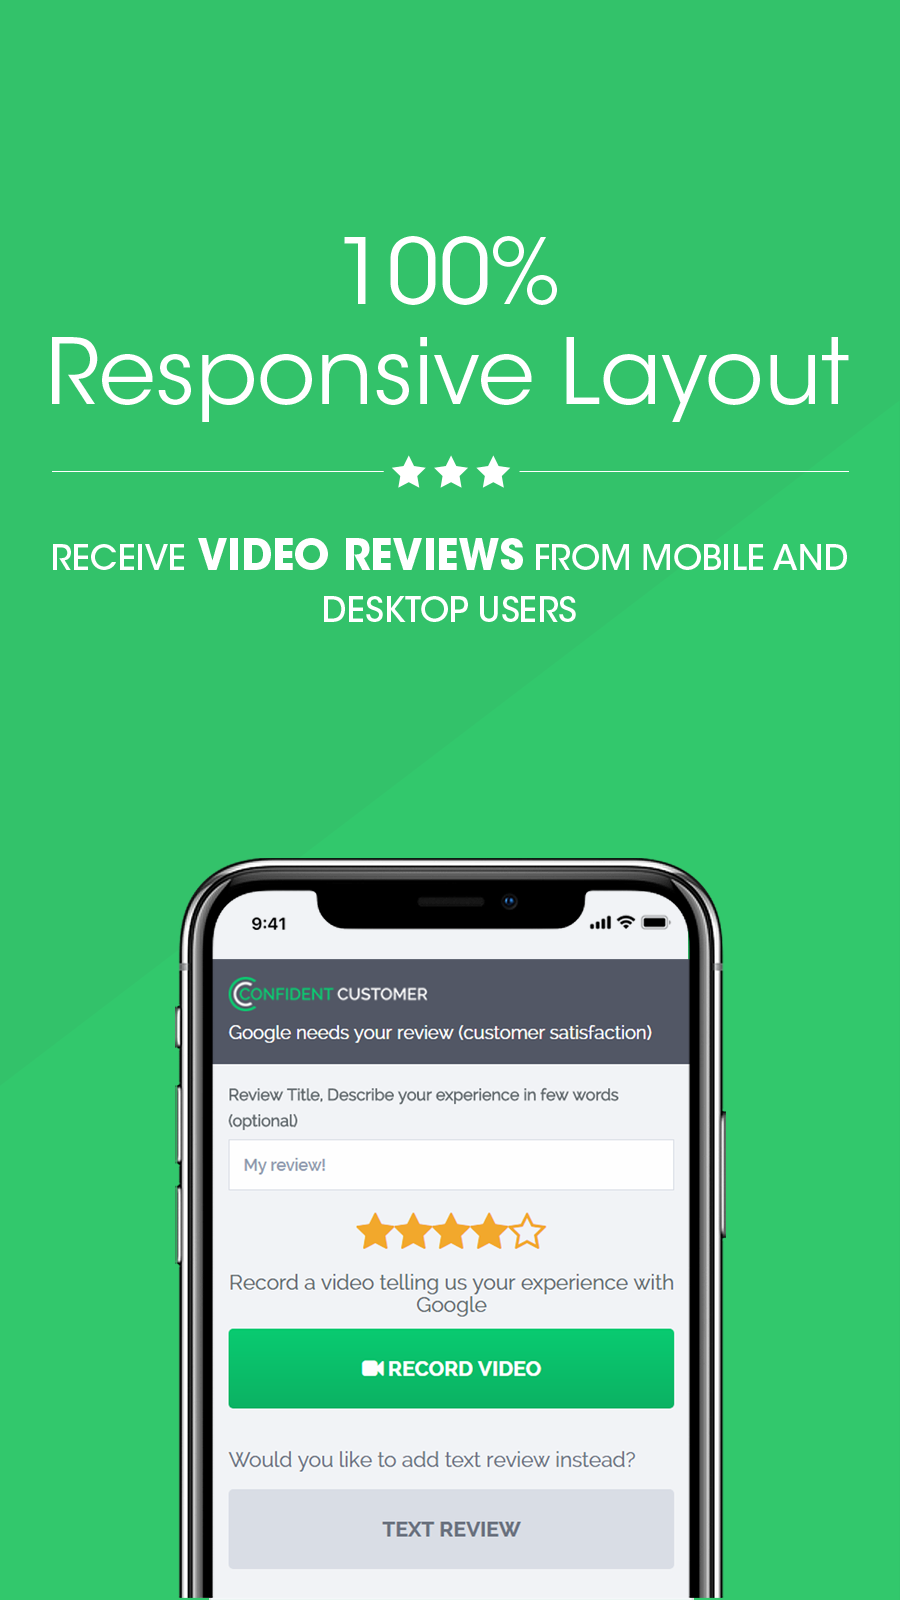 Get video reviews from mobile and desktop users. 100% responsive